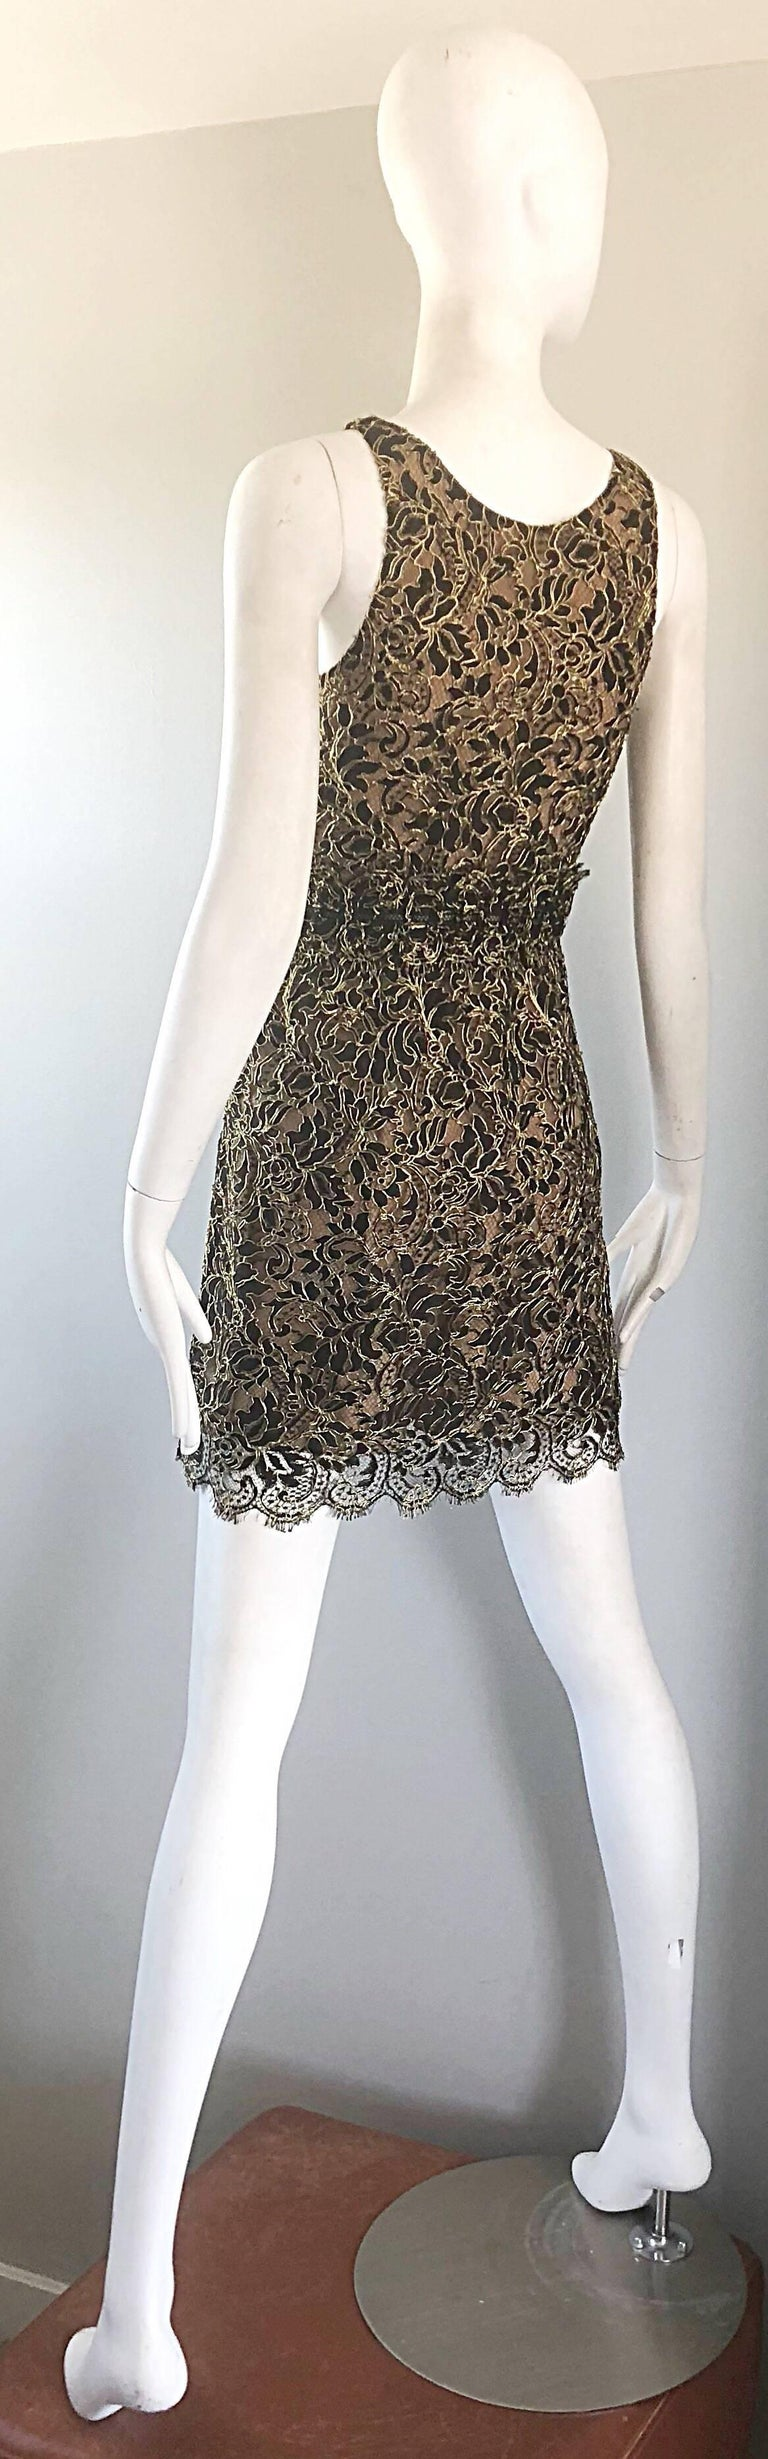 Balenciaga by Nicolas Ghesquiere Black + Gold + Nude Silk Chiffon Lace Dress For Sale 5